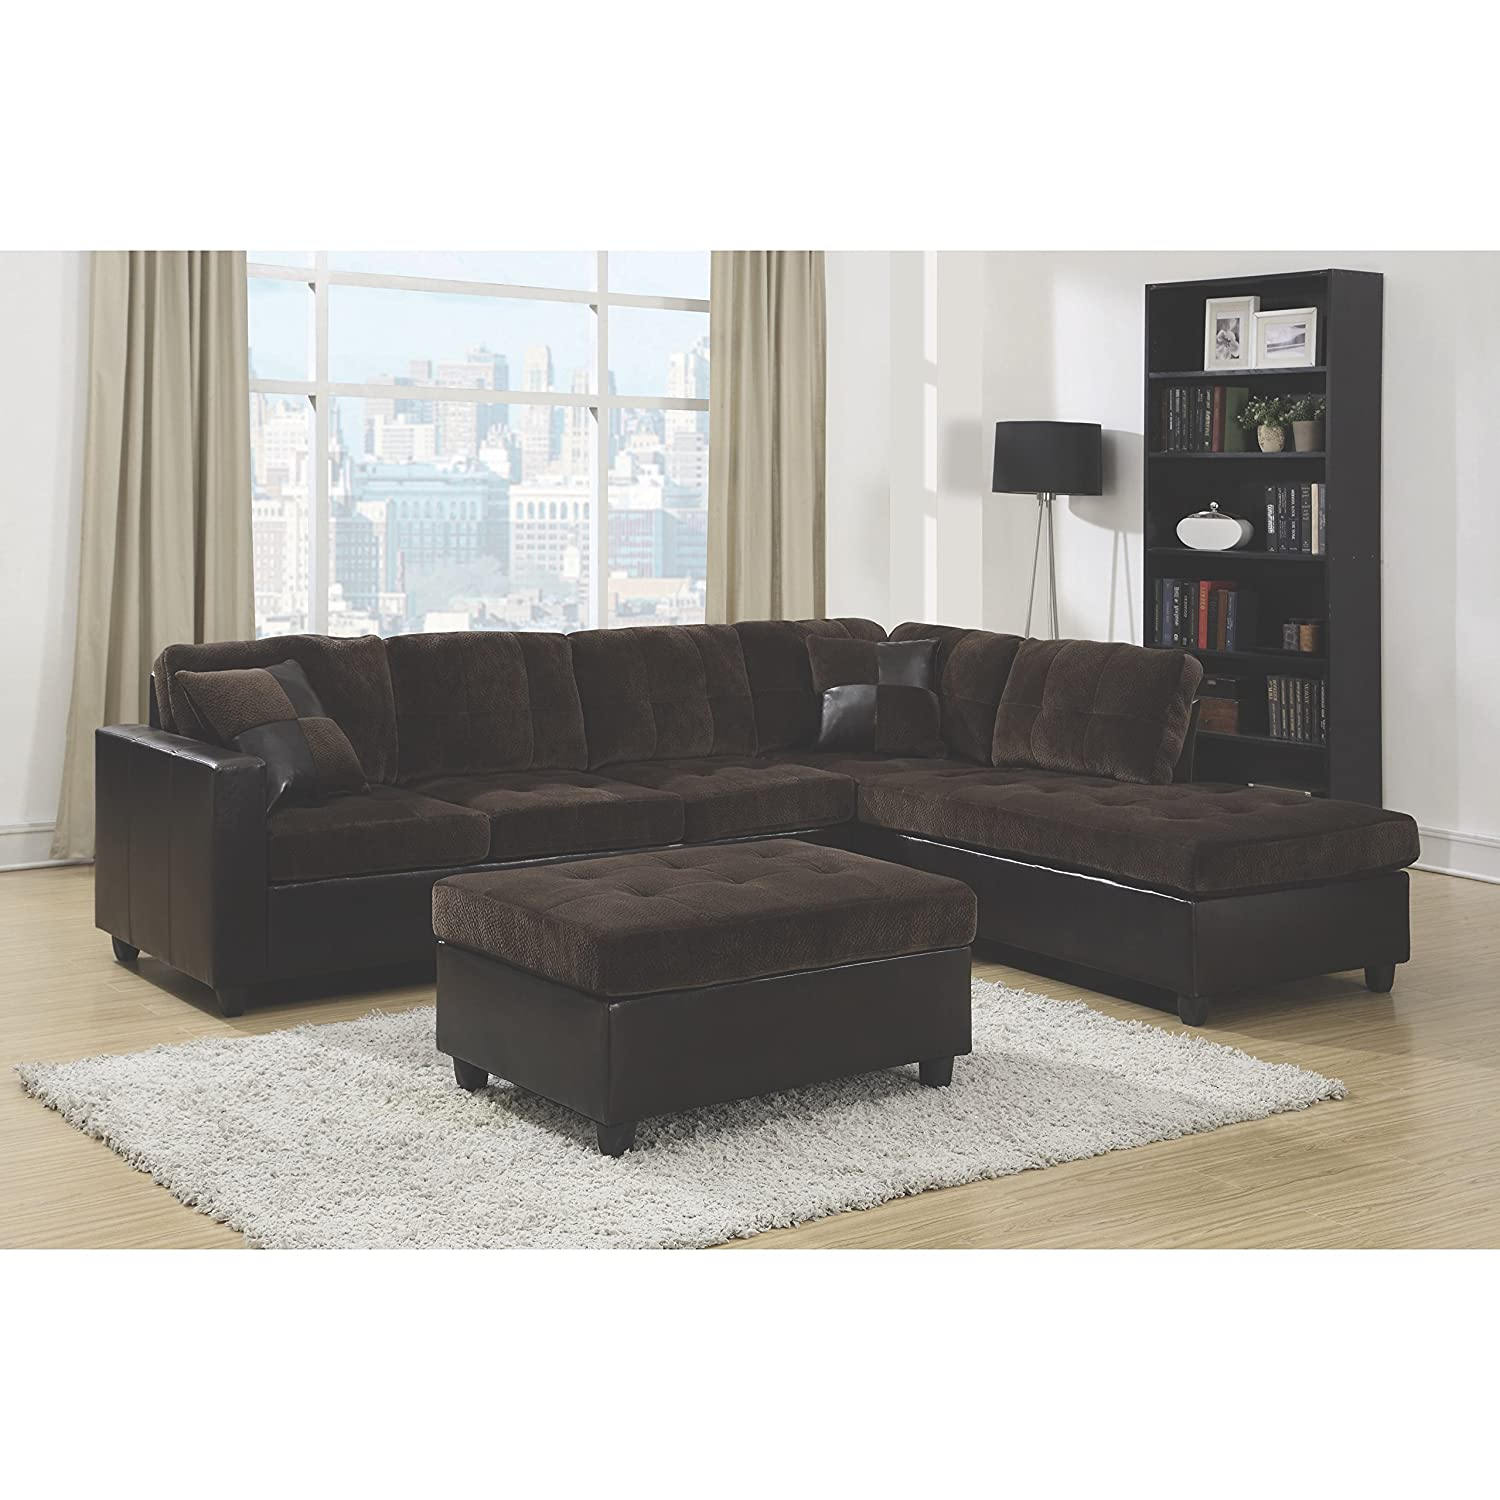 Coaster Home Furnishings 505645 Casual Sectional Sofa - Chocolate